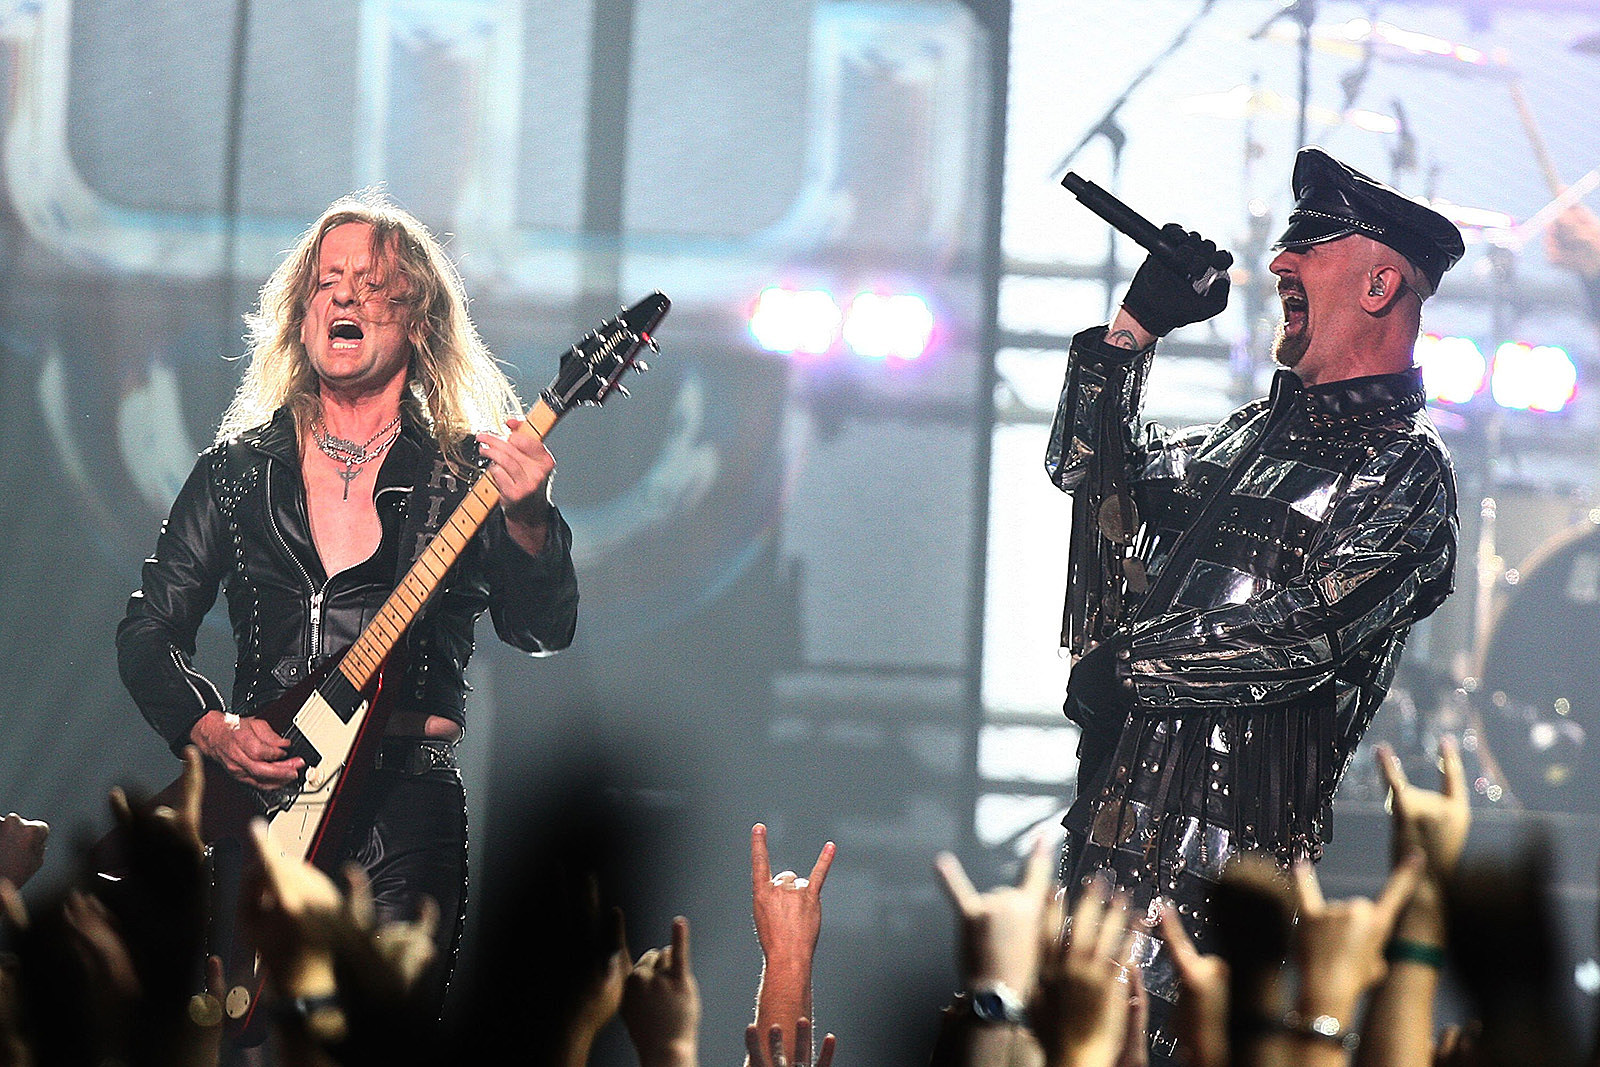 K.K. Downing: Rob Halford Should've Given Judas Priest Solo Songs